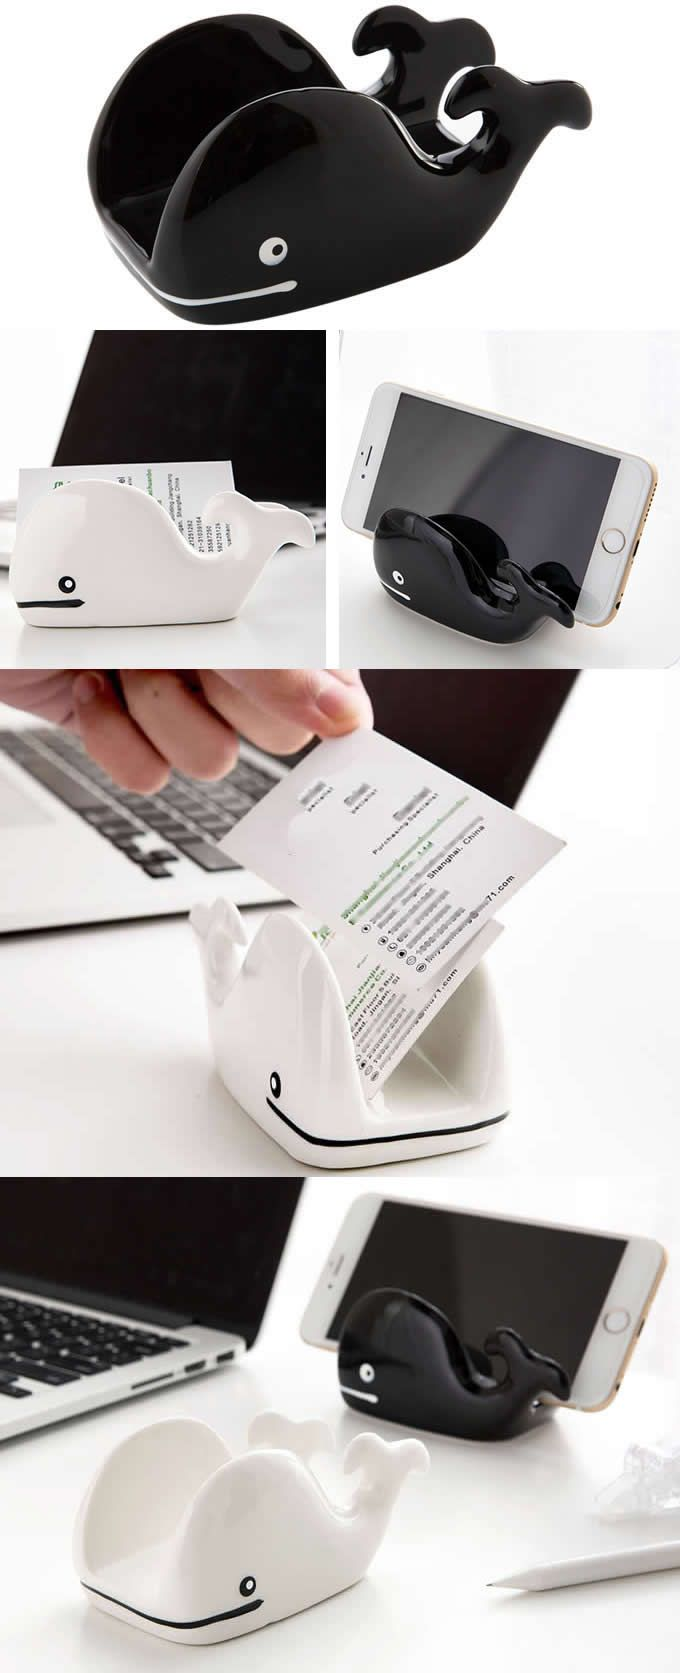 Whale Office Desk Organizer Mobile Phone Holder Stand Business